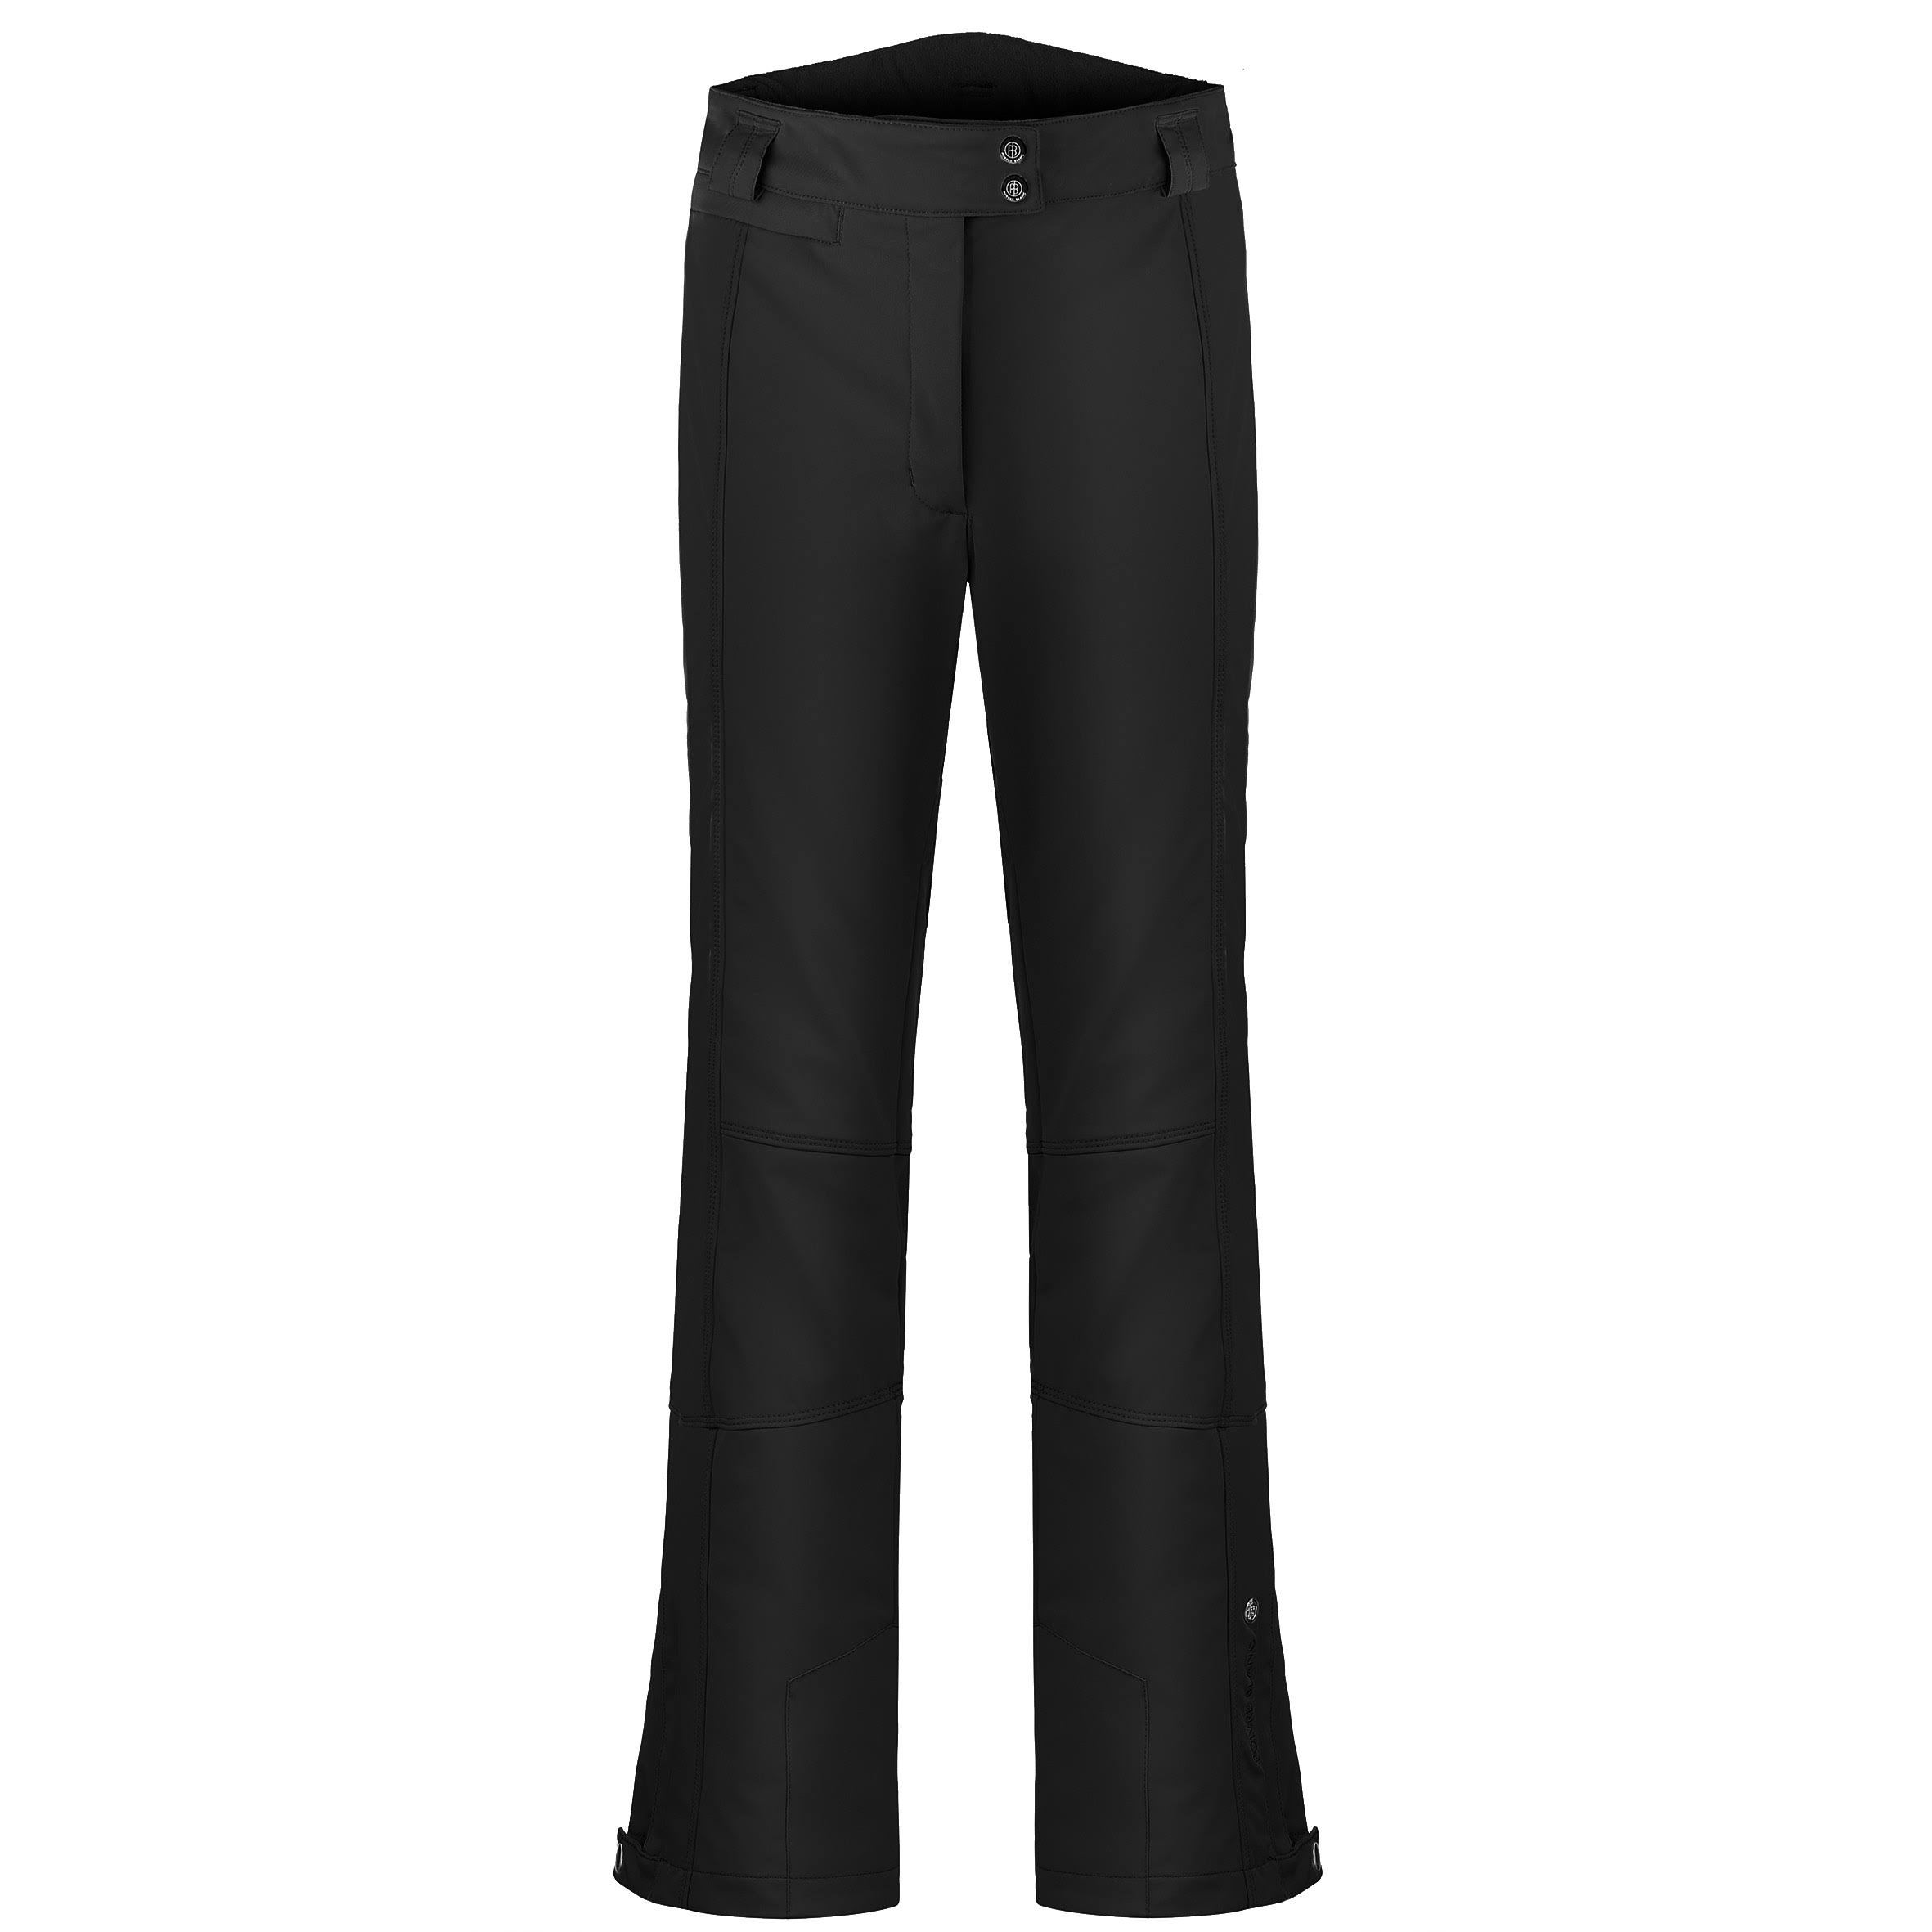 Poivre Blanc Stretch Ski Pants - Womens - Black